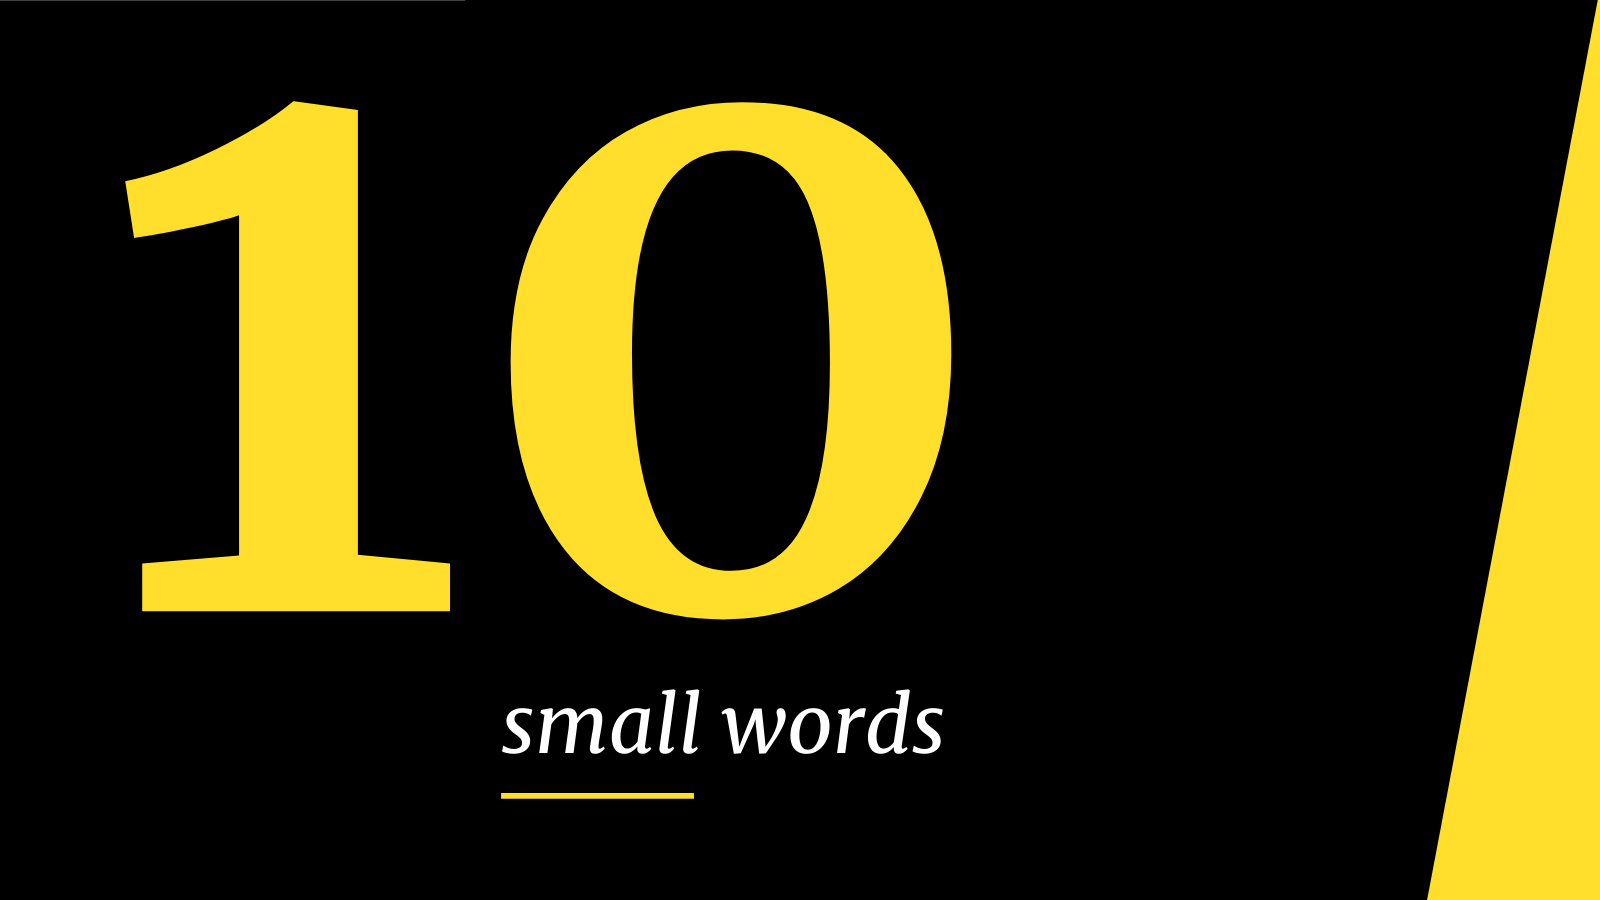 10 small words